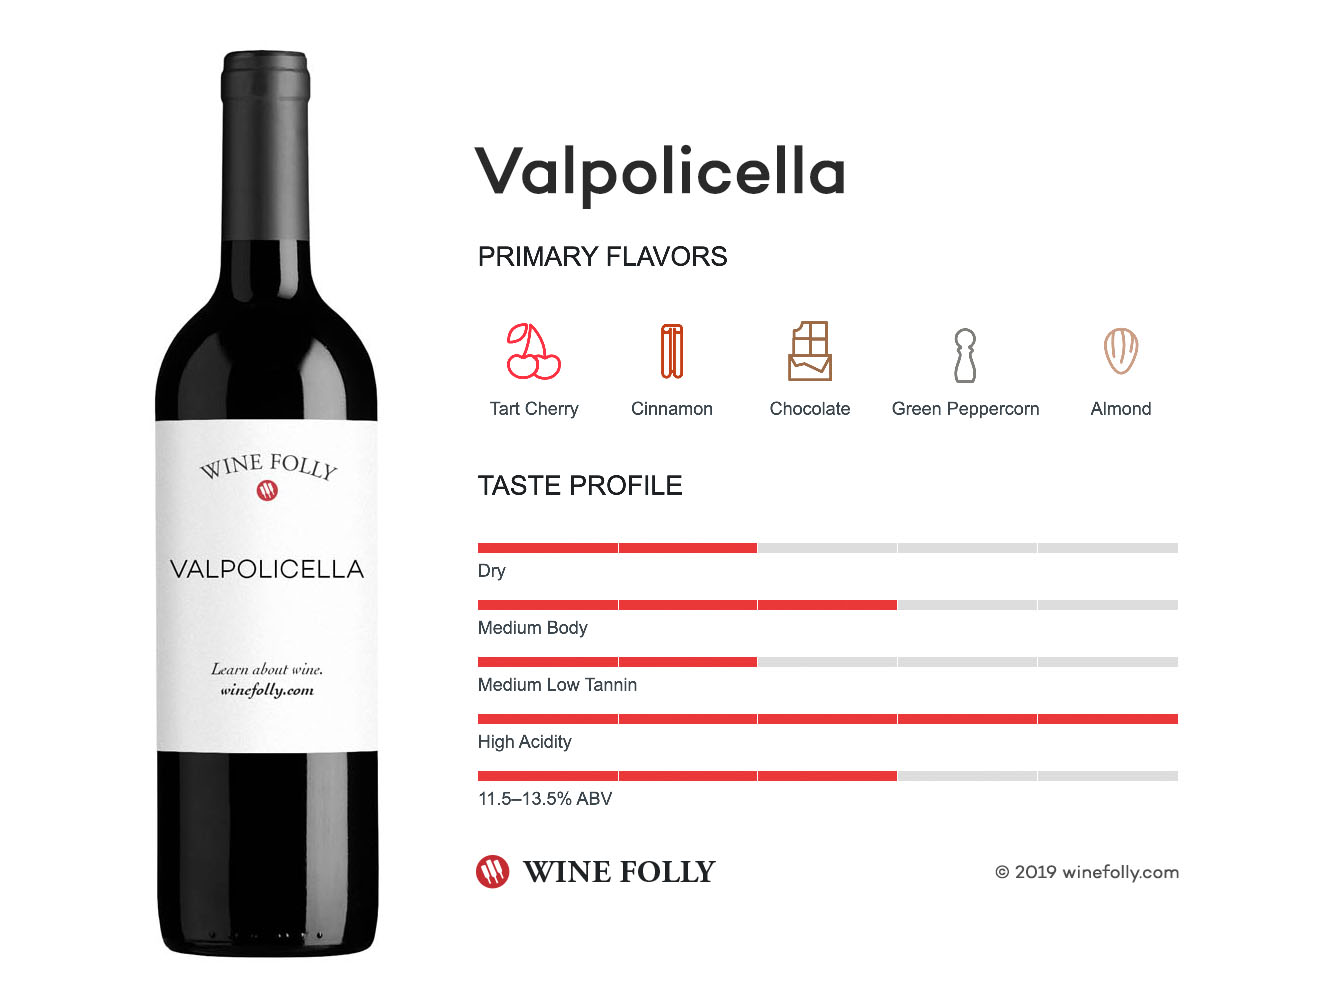 Valpolicella wine taste profile - infographic by Wine Folly